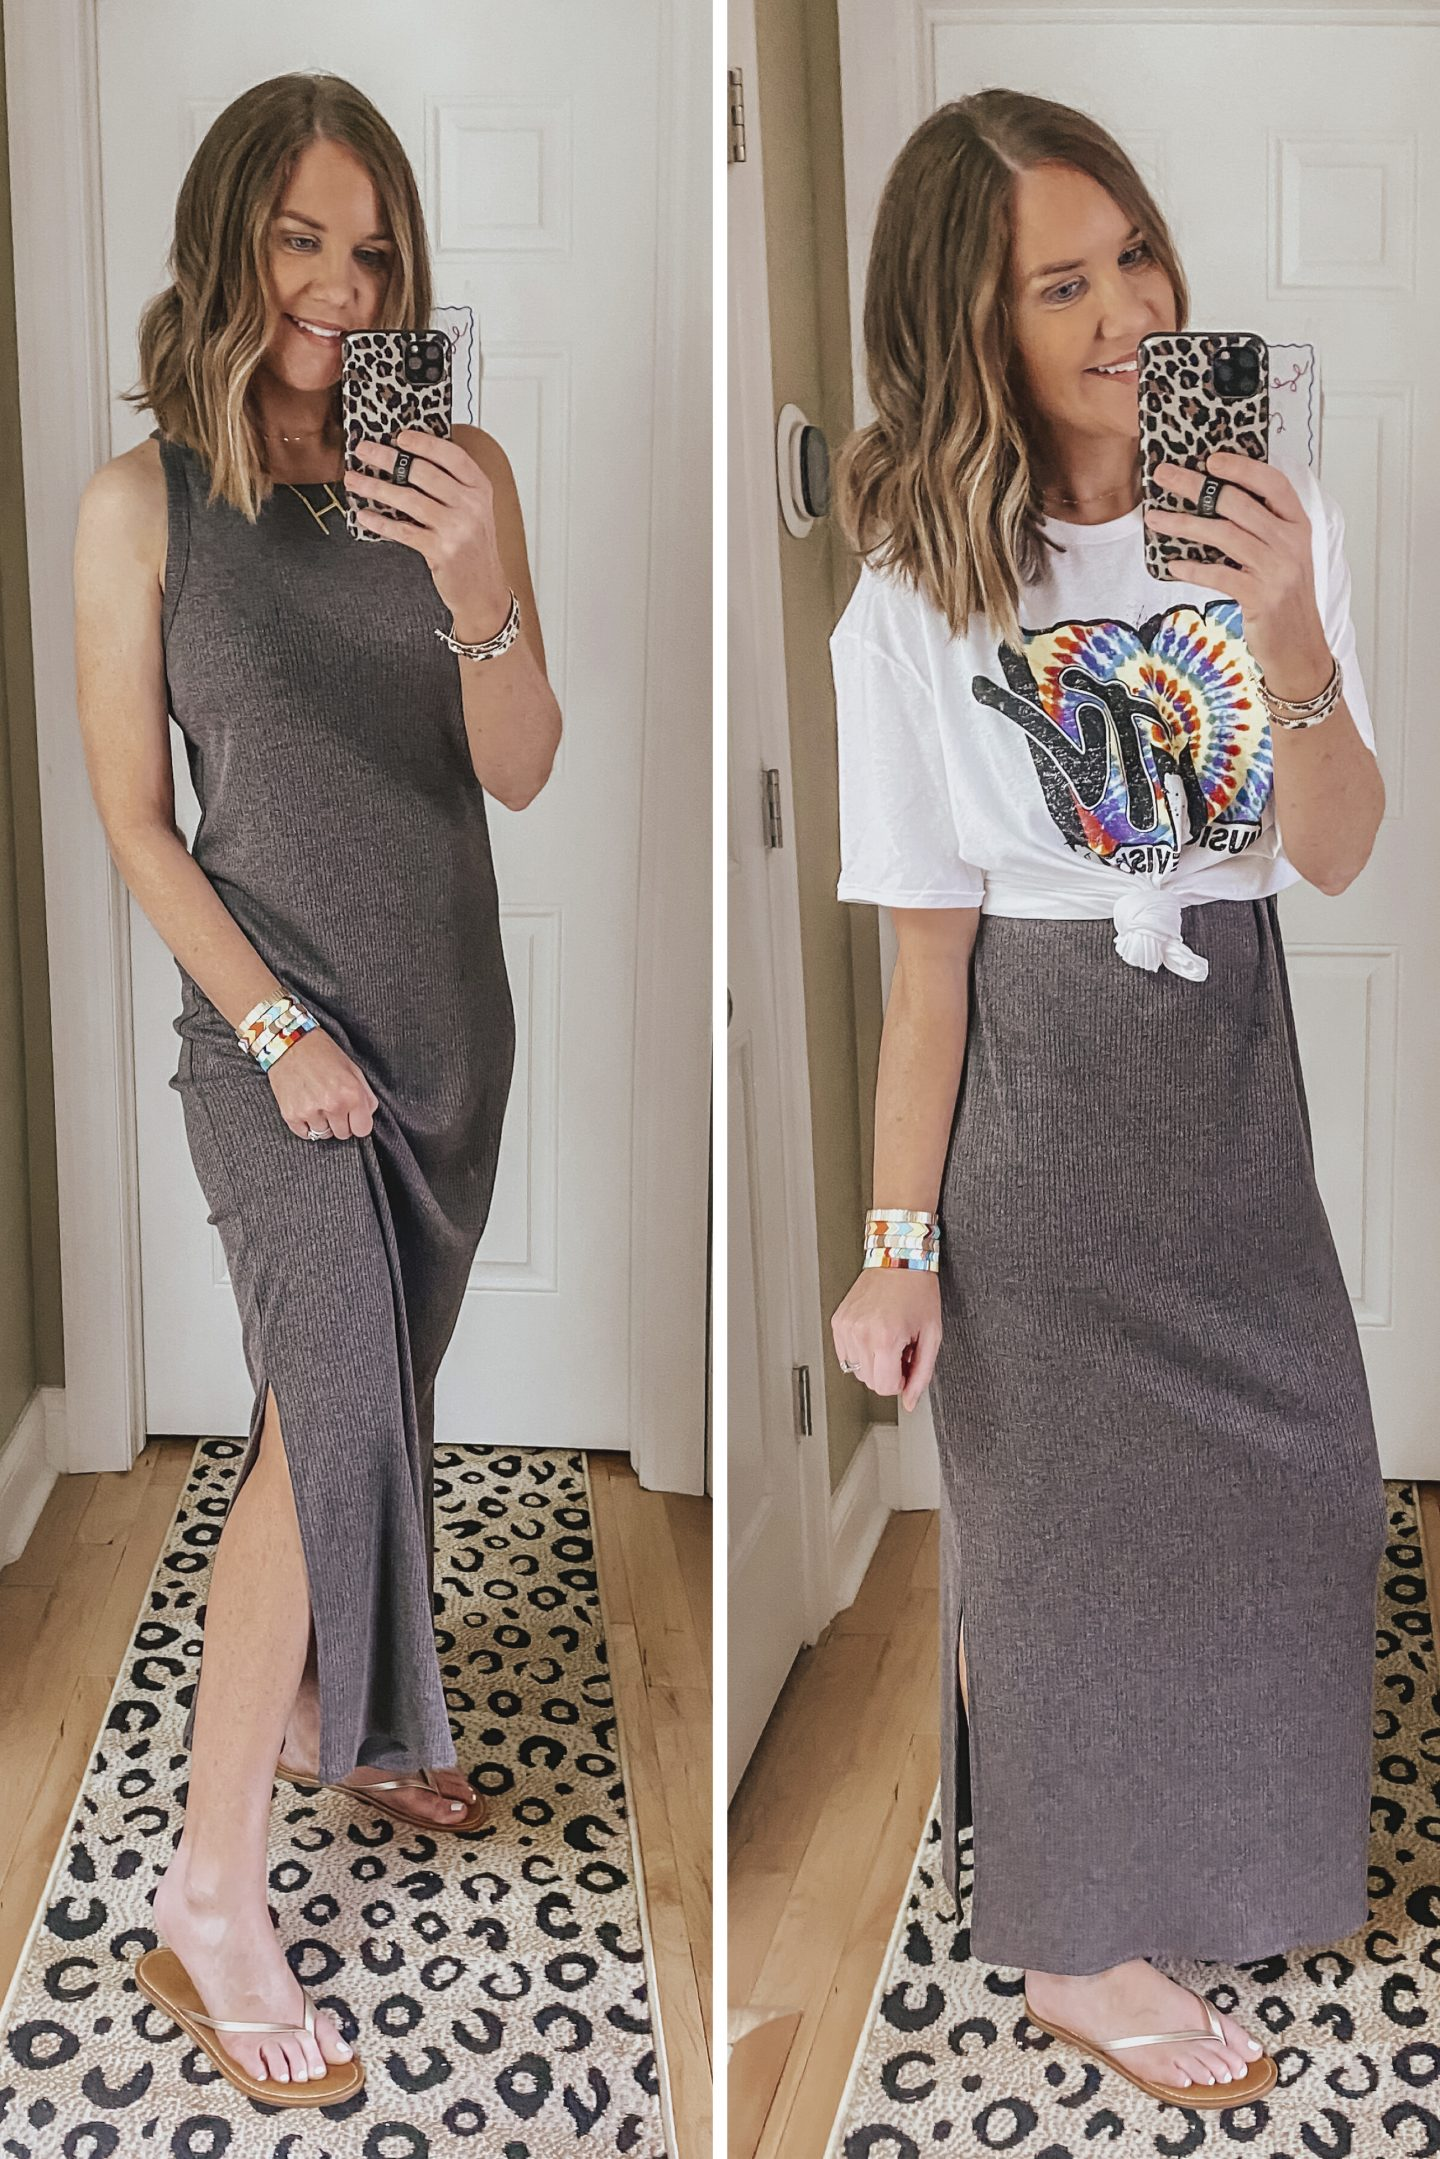 Target Summer Outfits for Women, cotton column dress, how to layer a graphic tee over a maxi dress